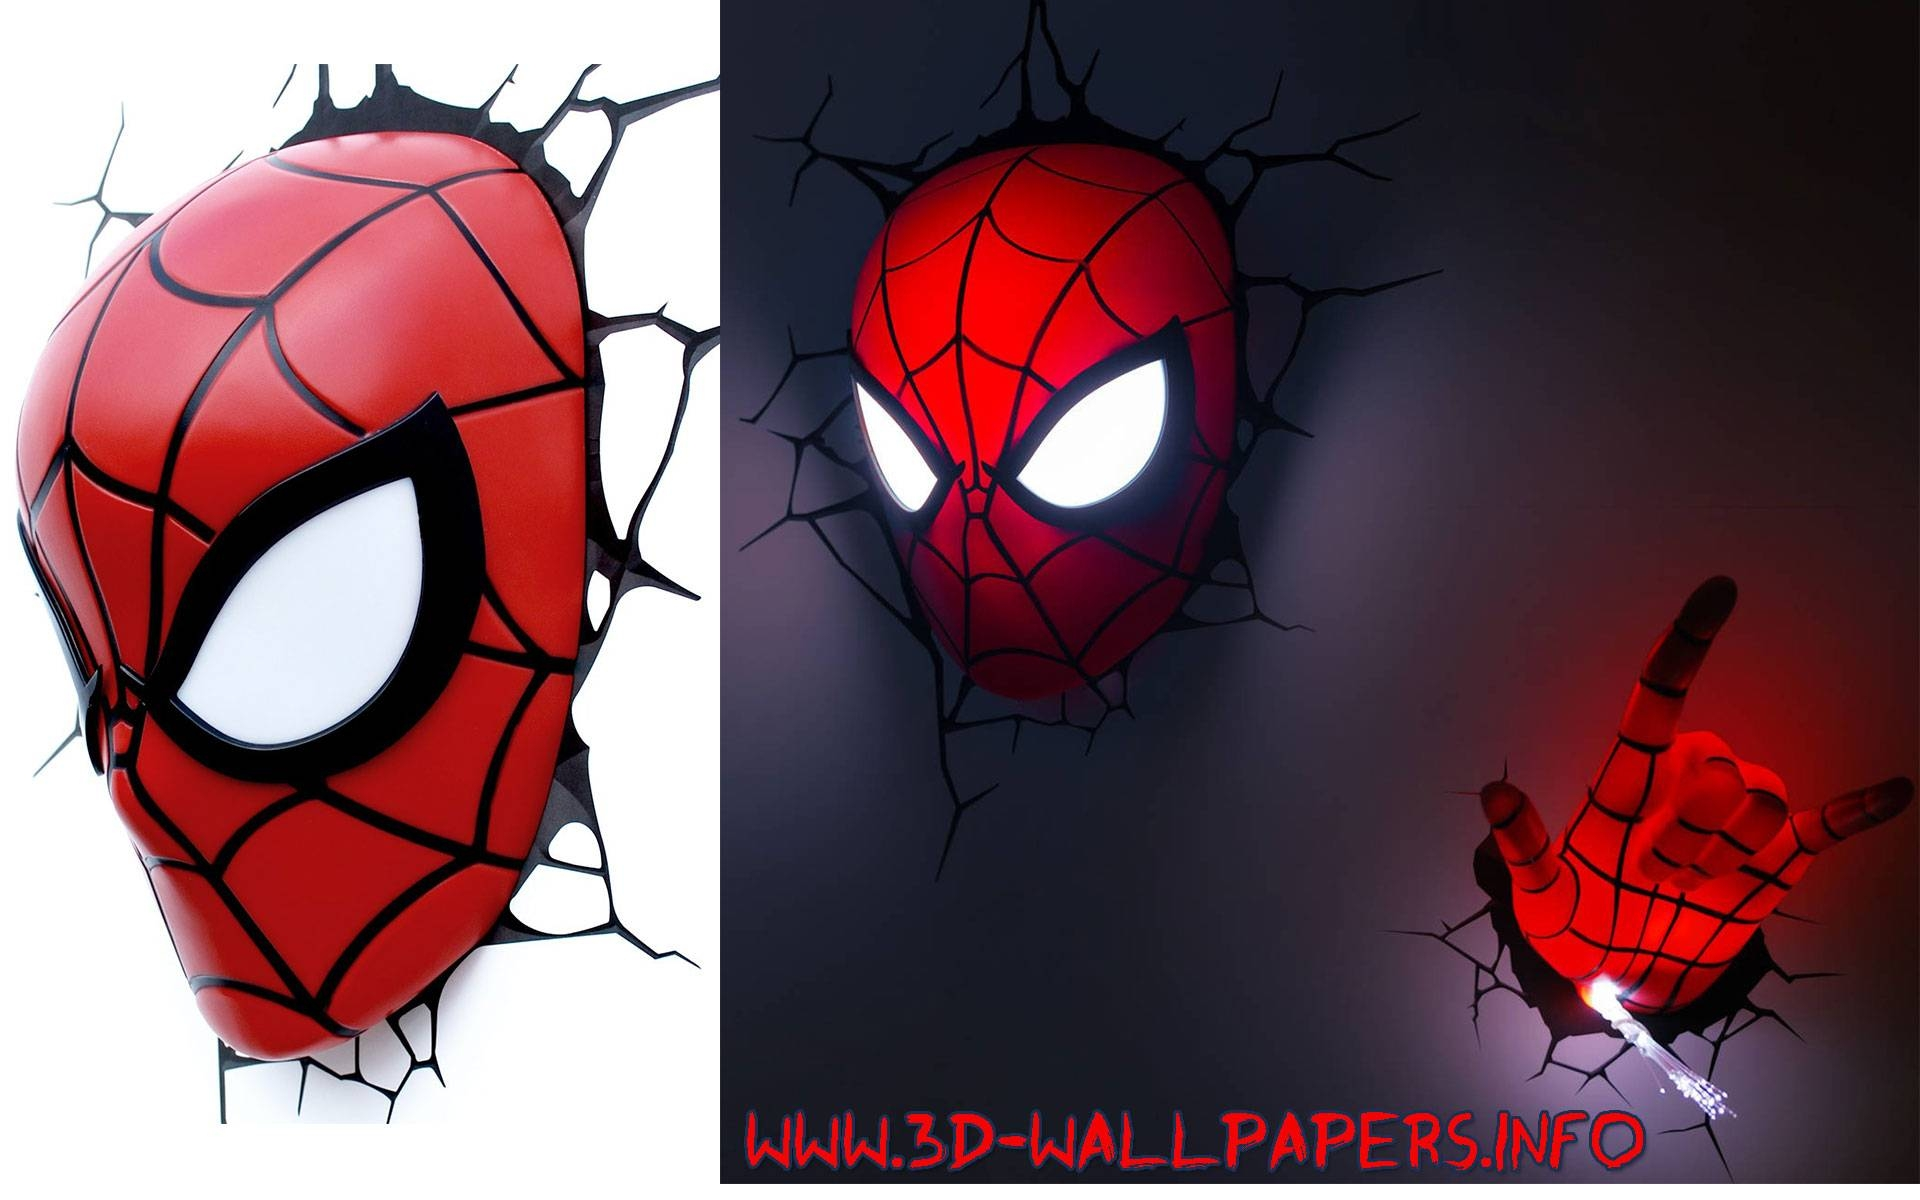 3D Wall Art Nightlight Spiderman Hand | Wallartideas For Most Up To Date Hulk Hand 3D Wall Art (Gallery 11 of 20)